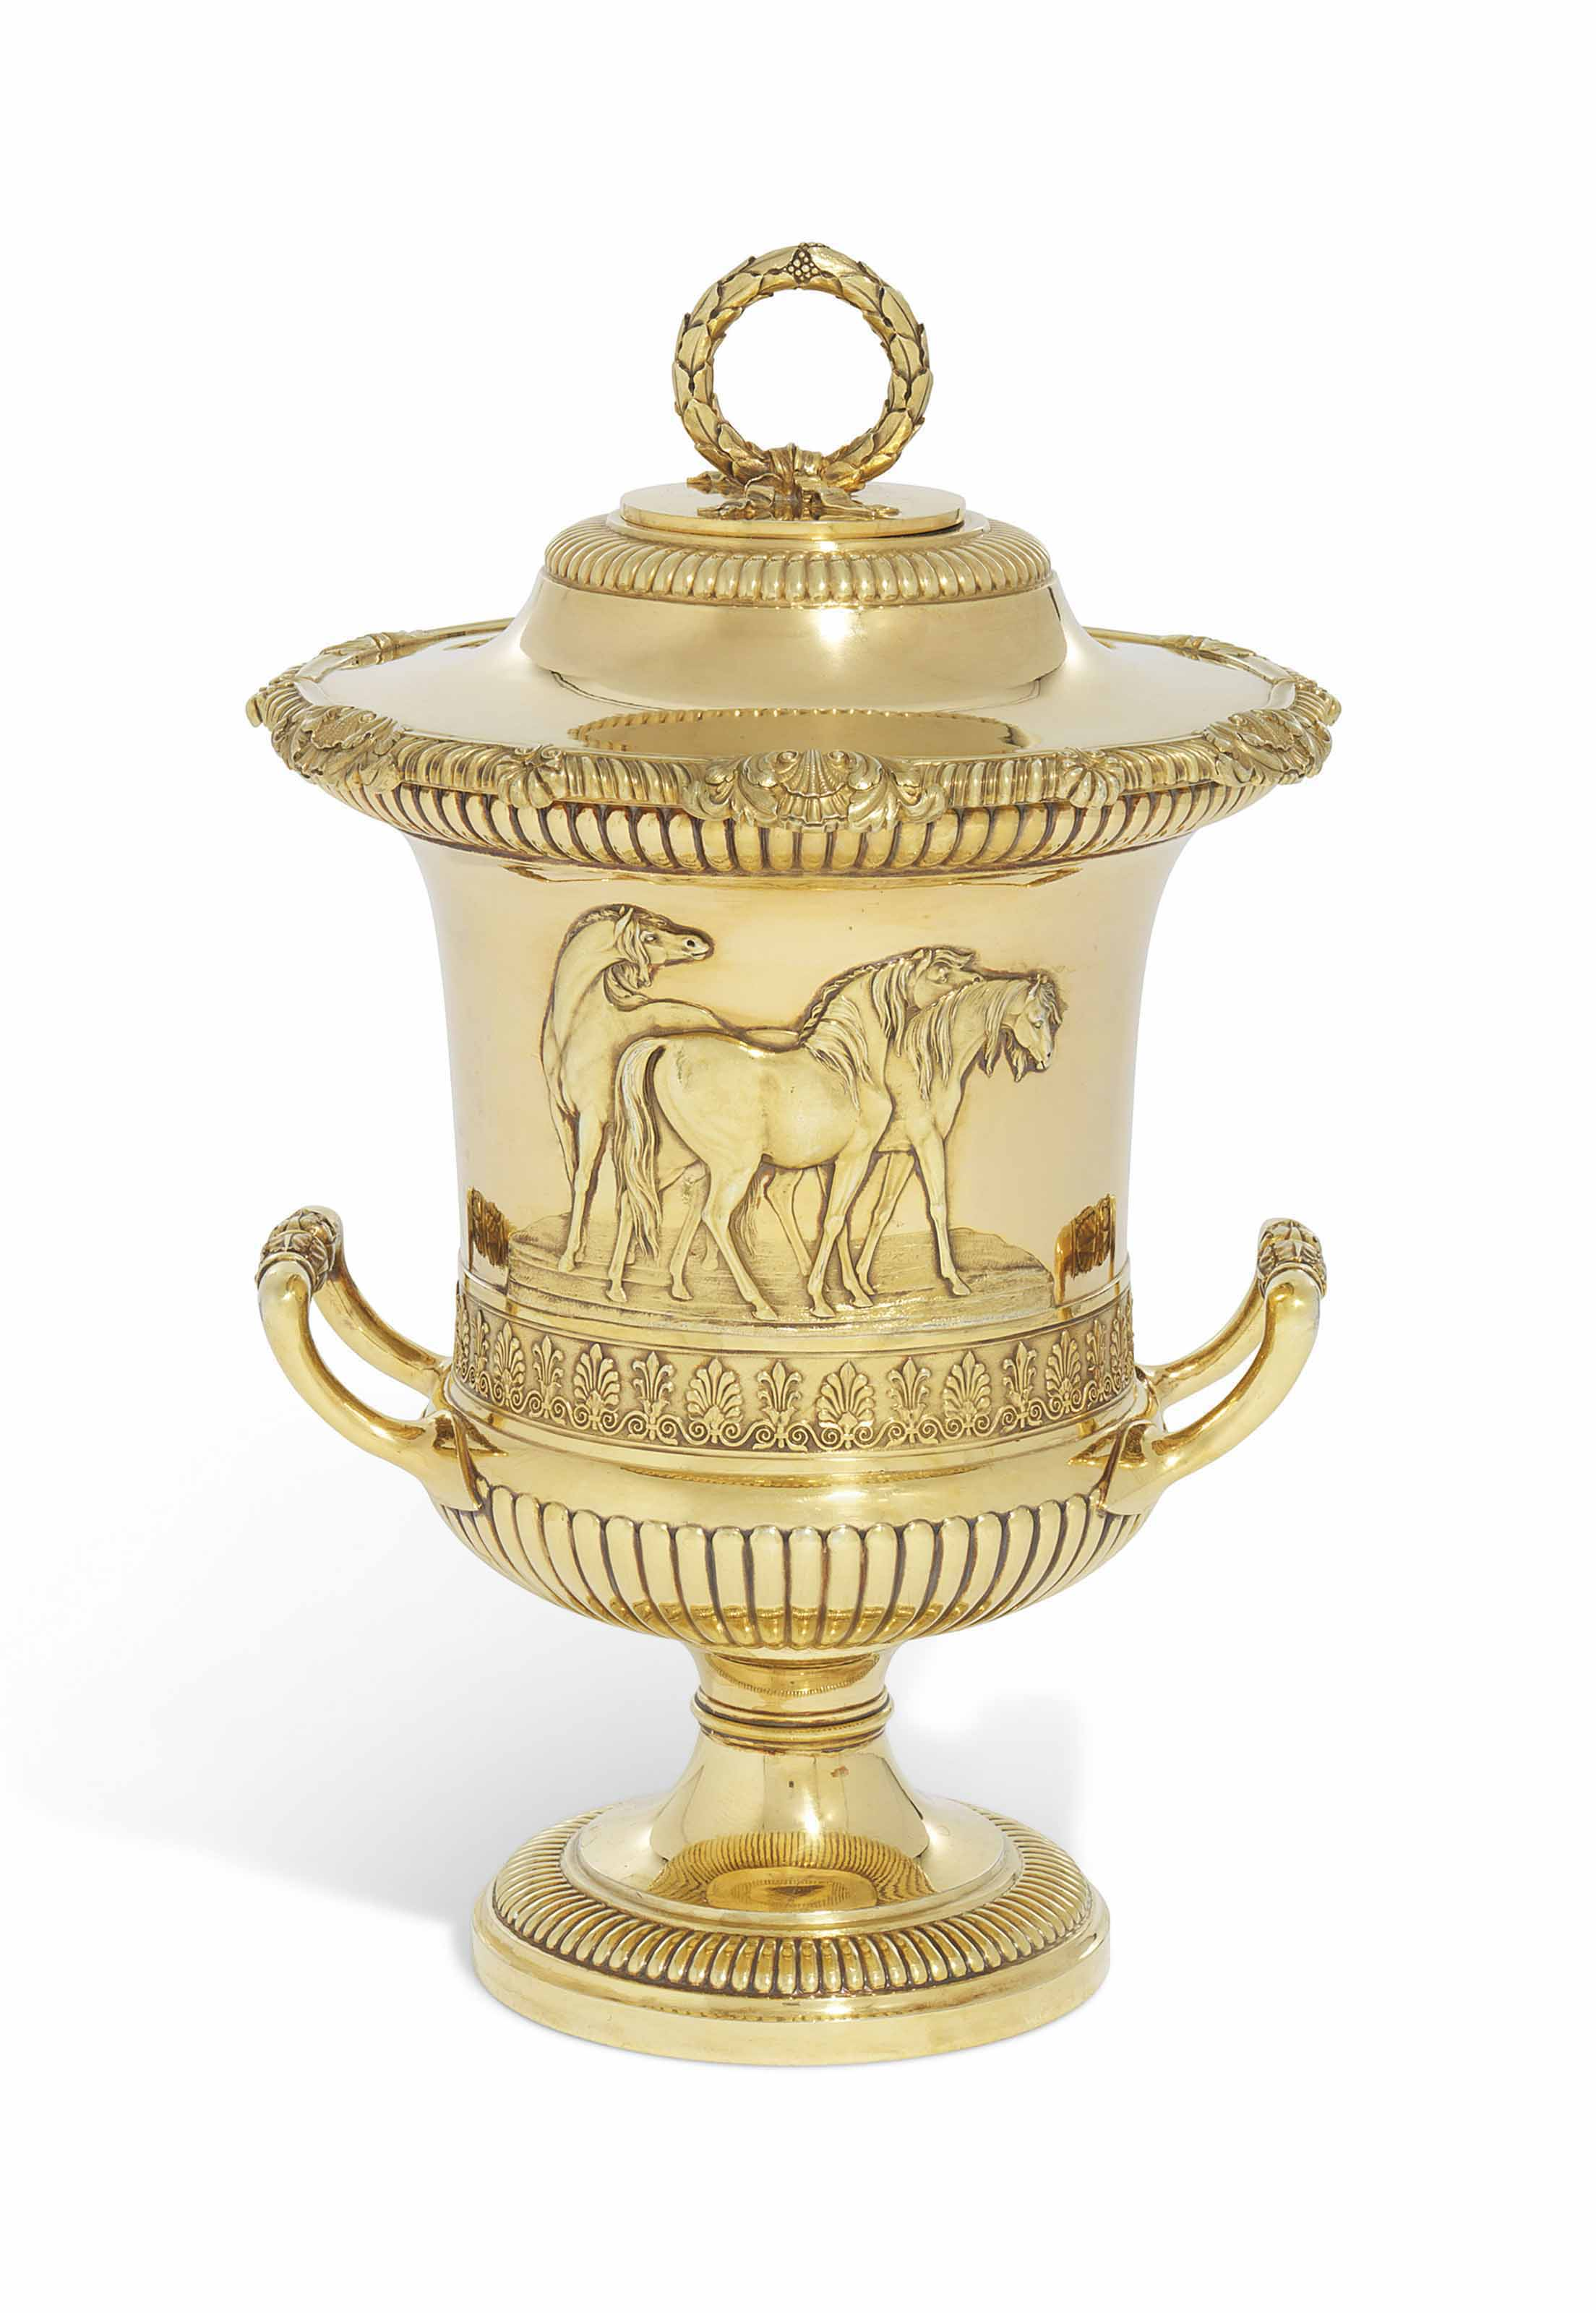 THE DORSETSHIRE GOLD CUP FOR 1